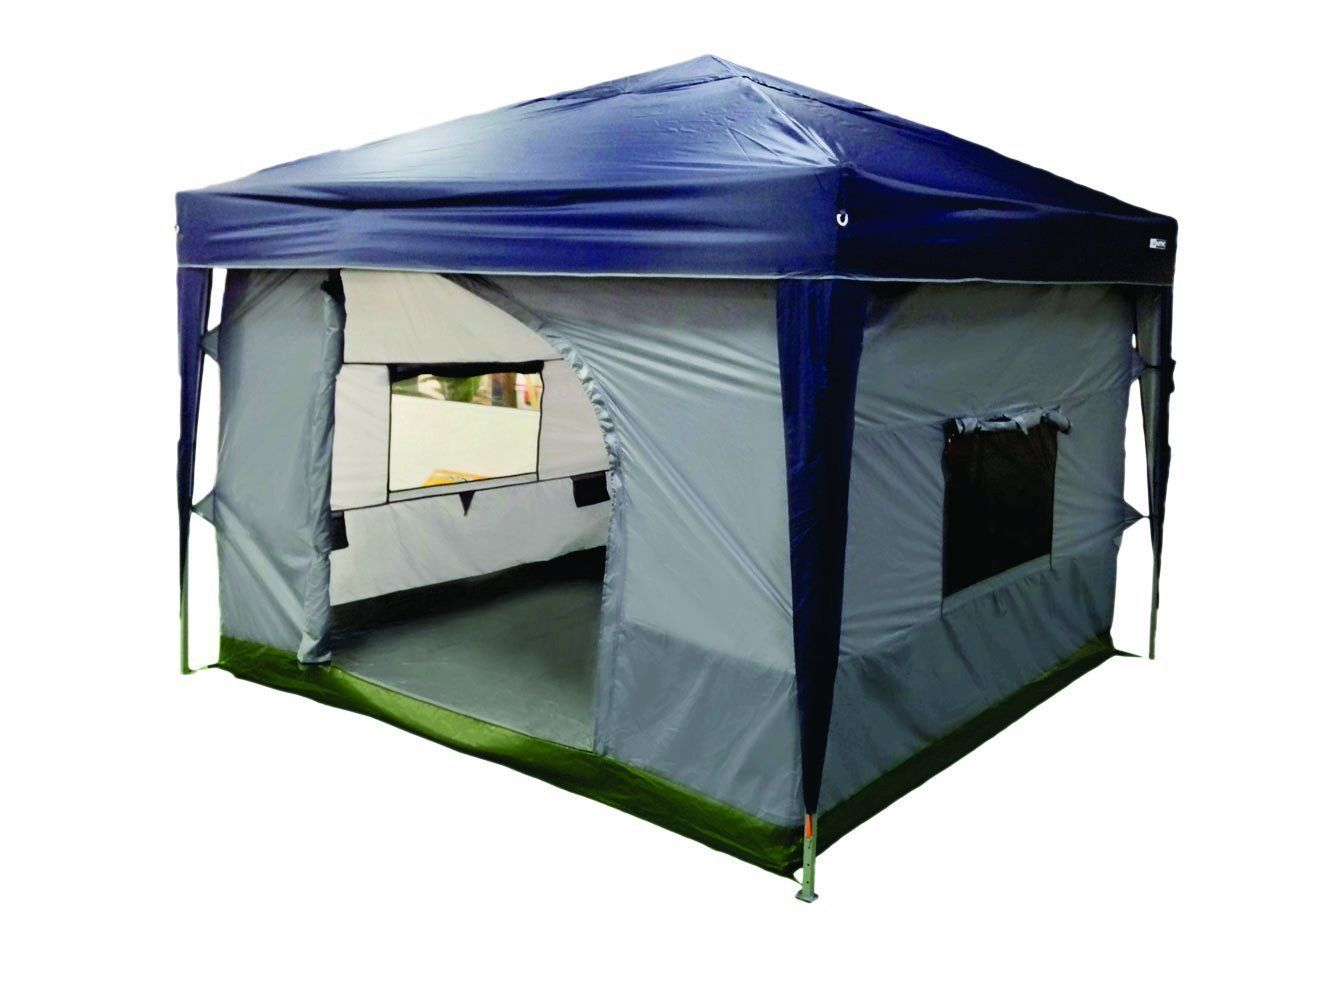 16x16 Pop Up Canopy In 2020 Tent Family Tent Camping Backpacking Tent